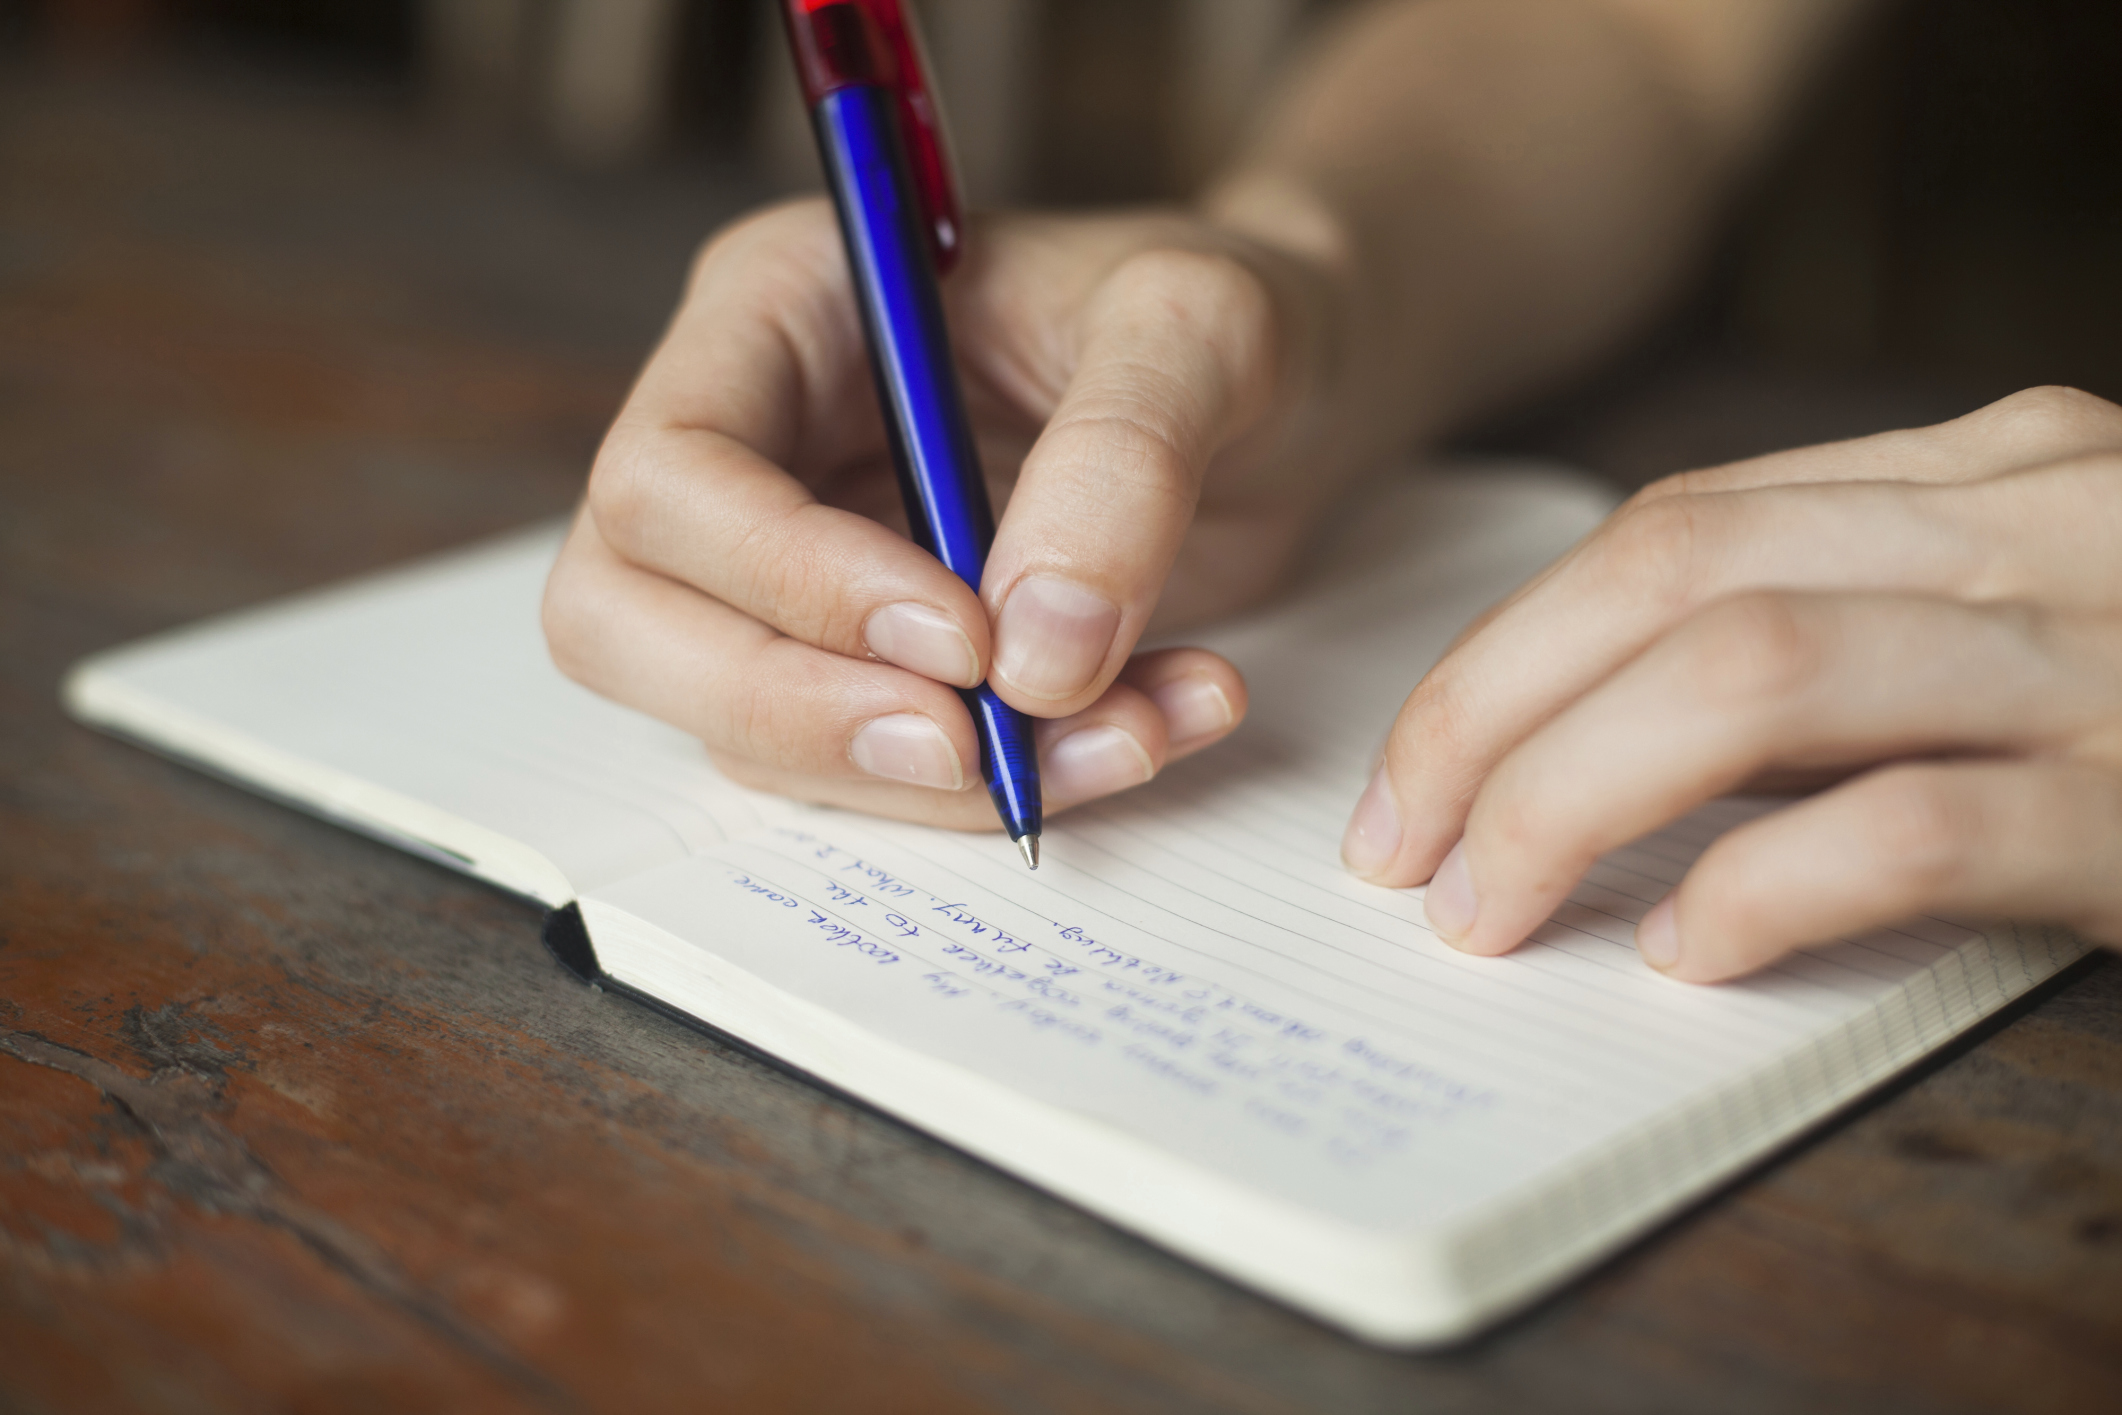 8 simple copywriting tips, backed by science